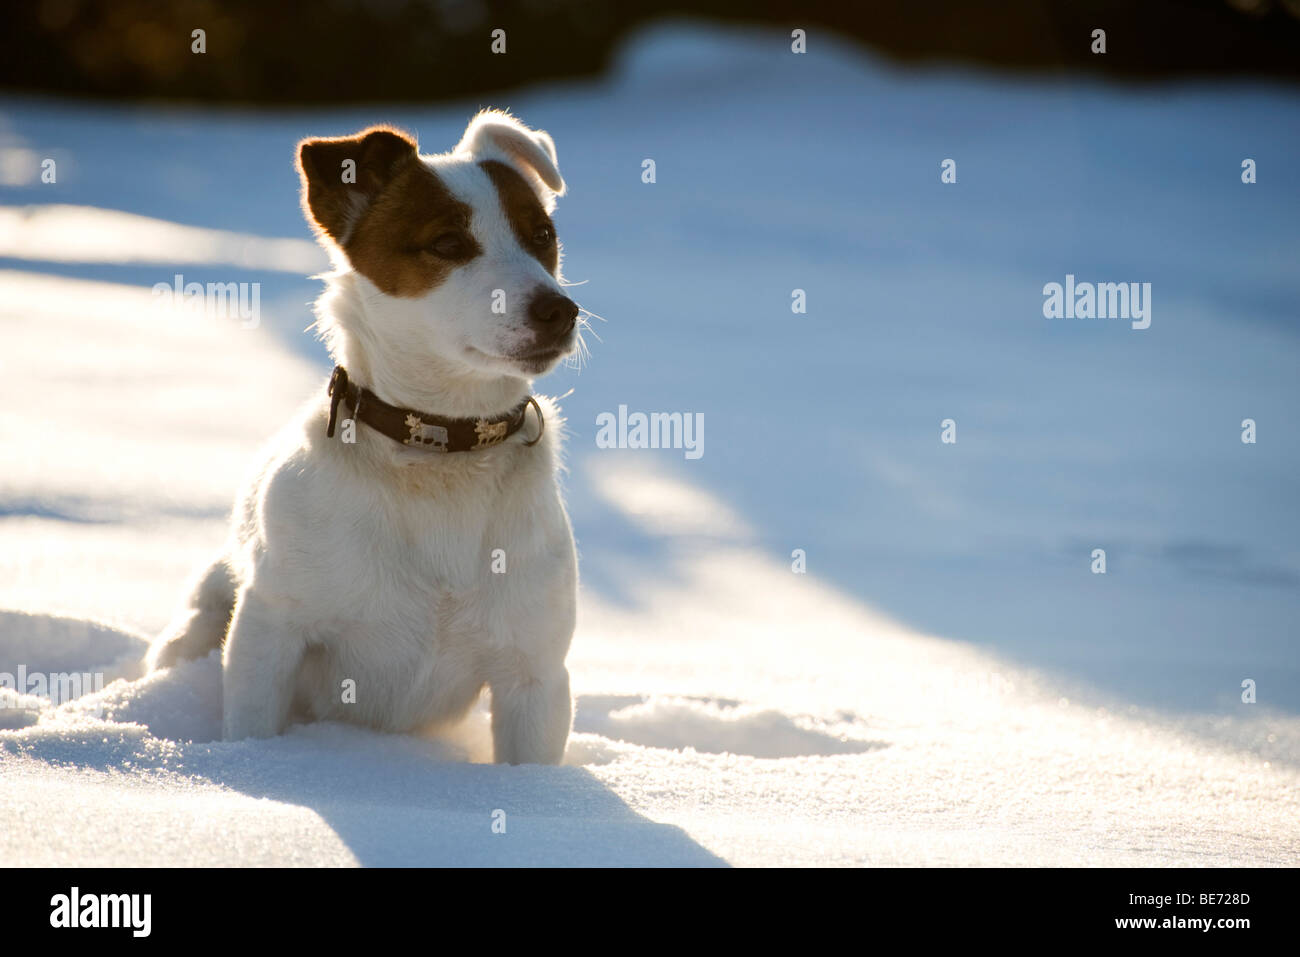 Dog sitting in snow - Stock Image